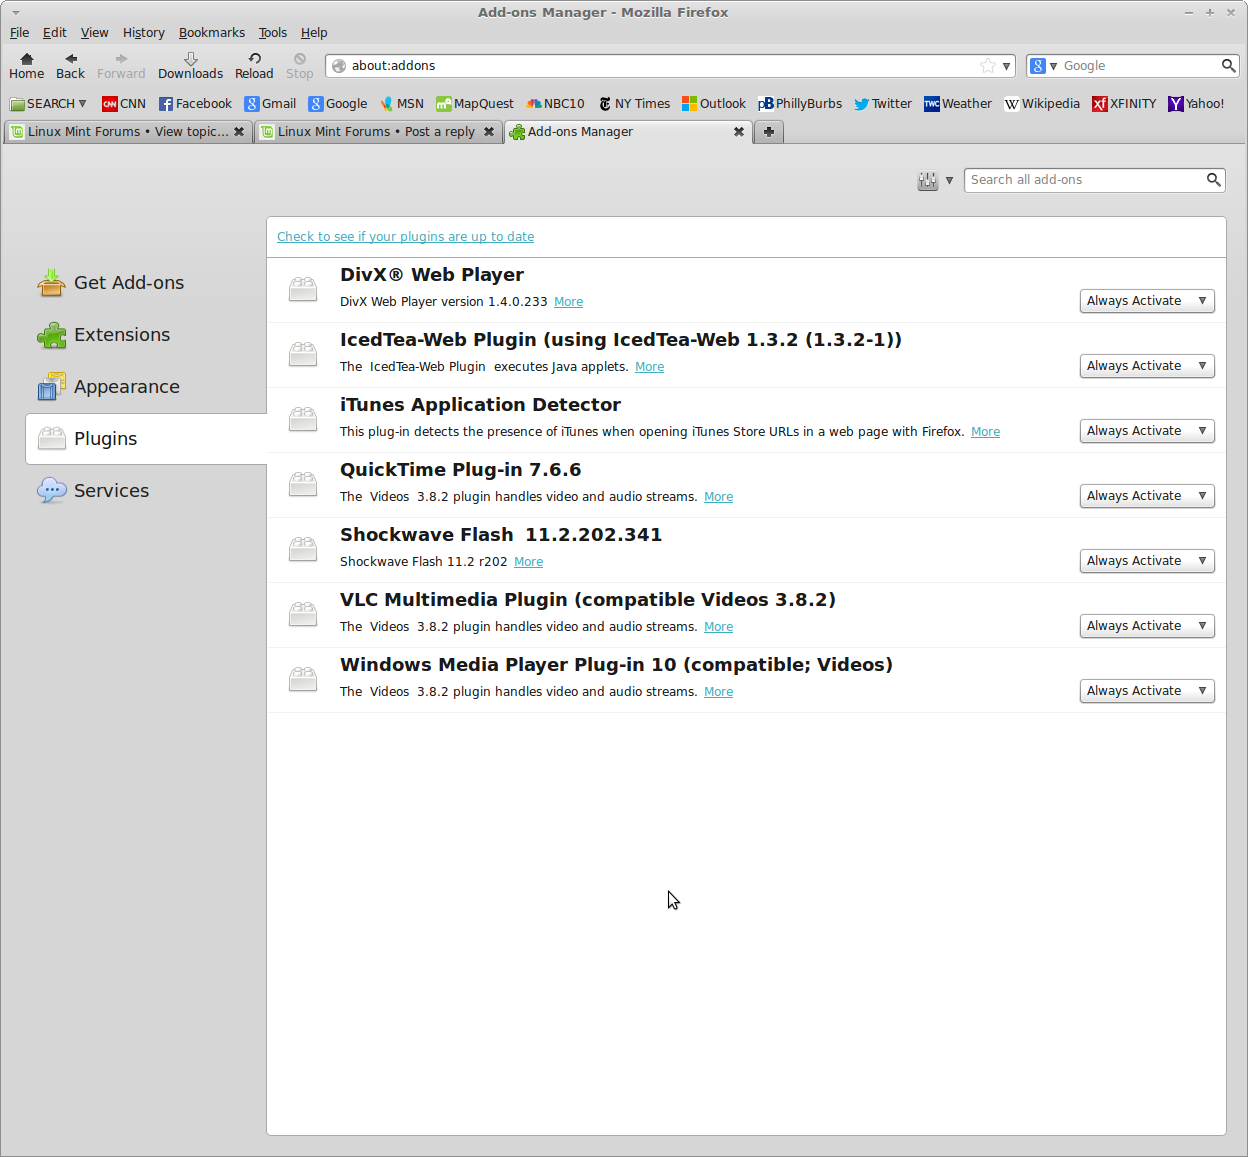 Screenshot-Add-ons Manager - Mozilla Firefox-1.png